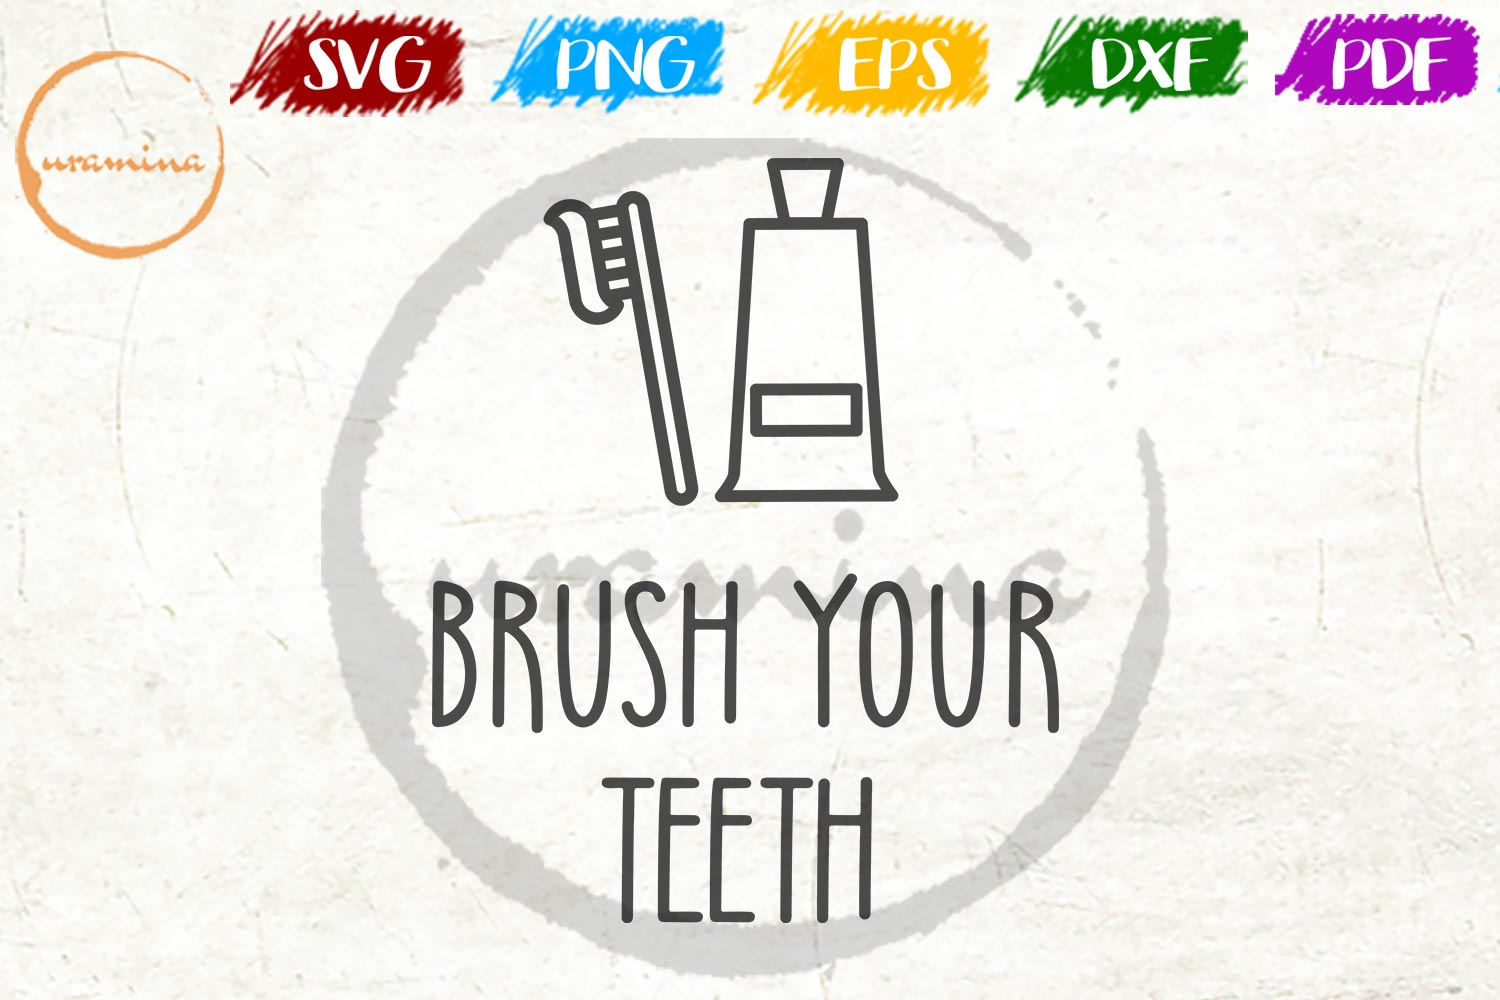 Download Free Brush Your Teeth Graphic By Uramina Creative Fabrica for Cricut Explore, Silhouette and other cutting machines.